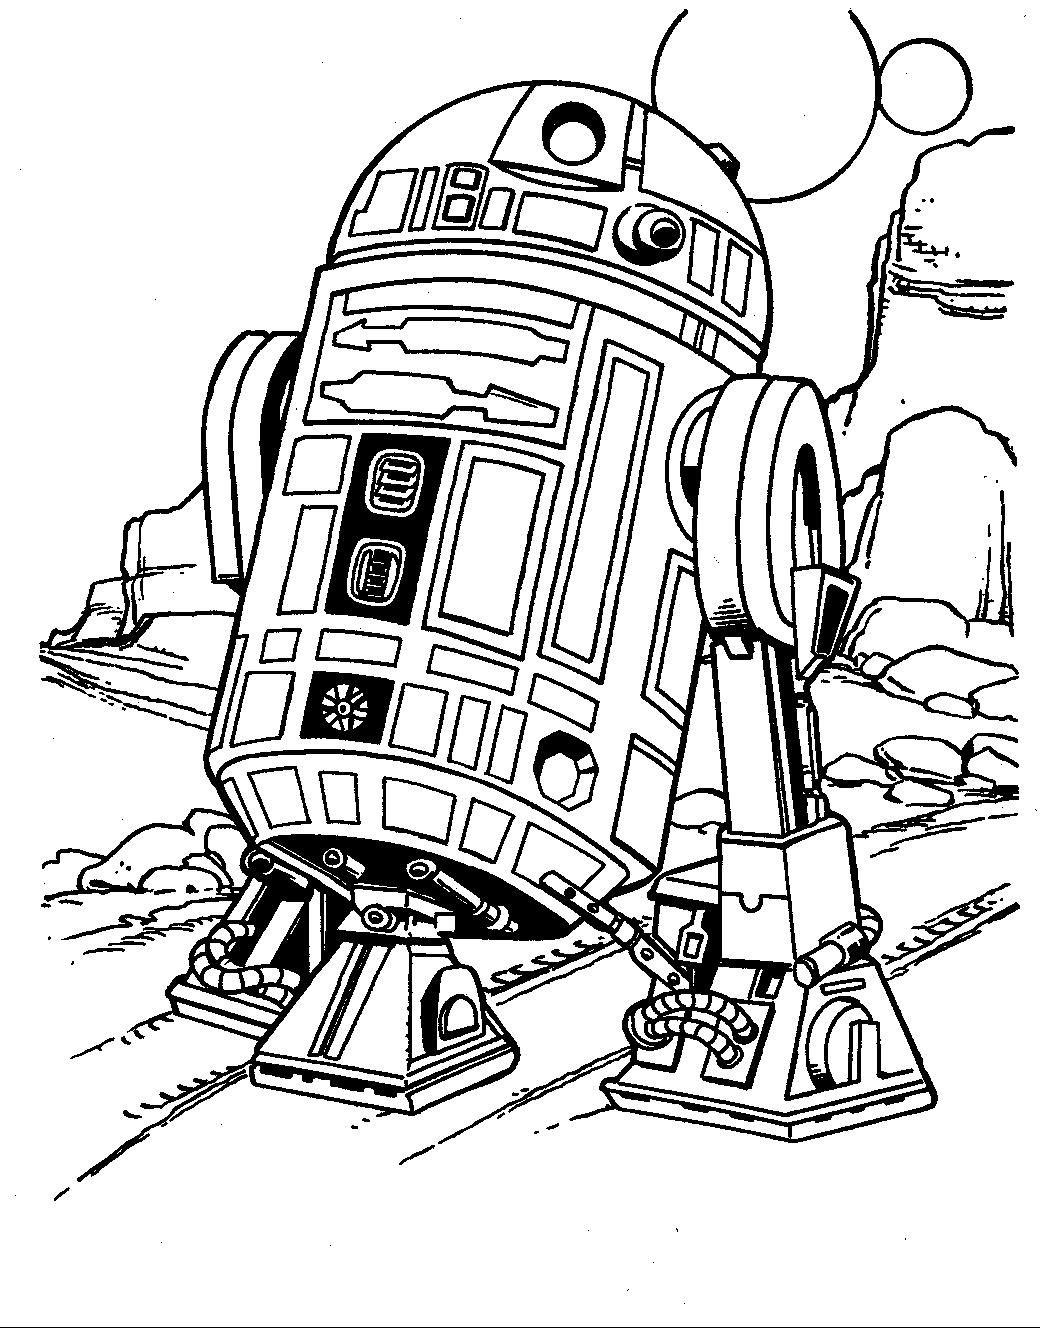 Star Wars Free Coloring Pages to Print | Free Coloring Sheets